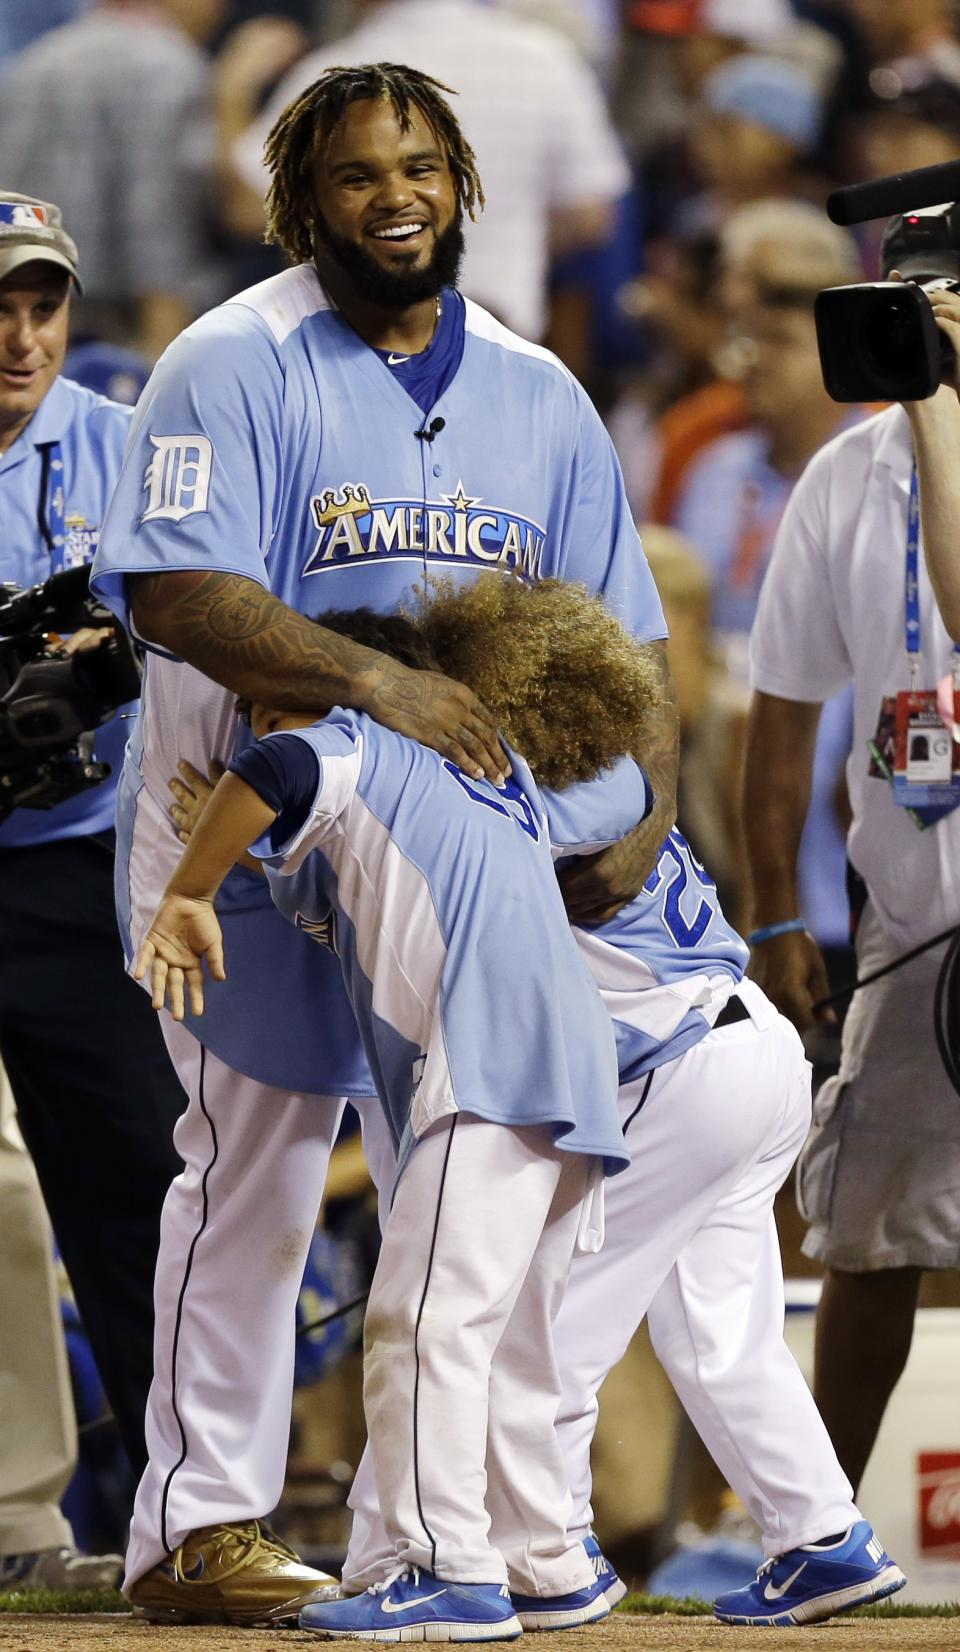 American League's Prince Fielder, of the Detroit Tigers, hugs his children after competing in the final round of the MLB All-Star baseball Home Run Derby, Monday, July 9, 2012, in Kansas City, Mo. Fielder won the competition. (AP Photo/Jeff Roberson)